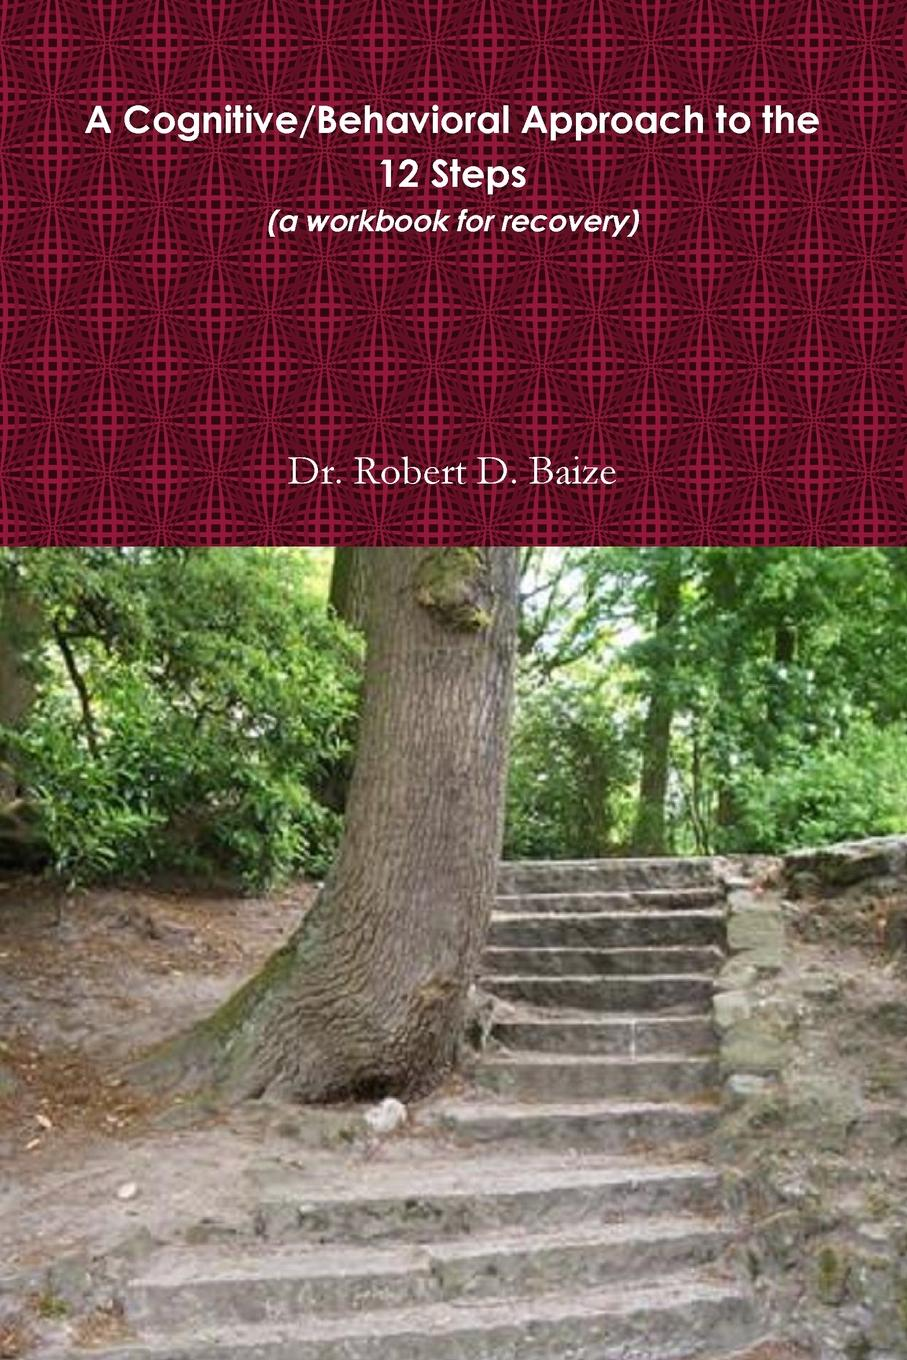 Dr. Robert Baize A Cognitive/Behavioral Approach to the 12 Steps a road to recovery